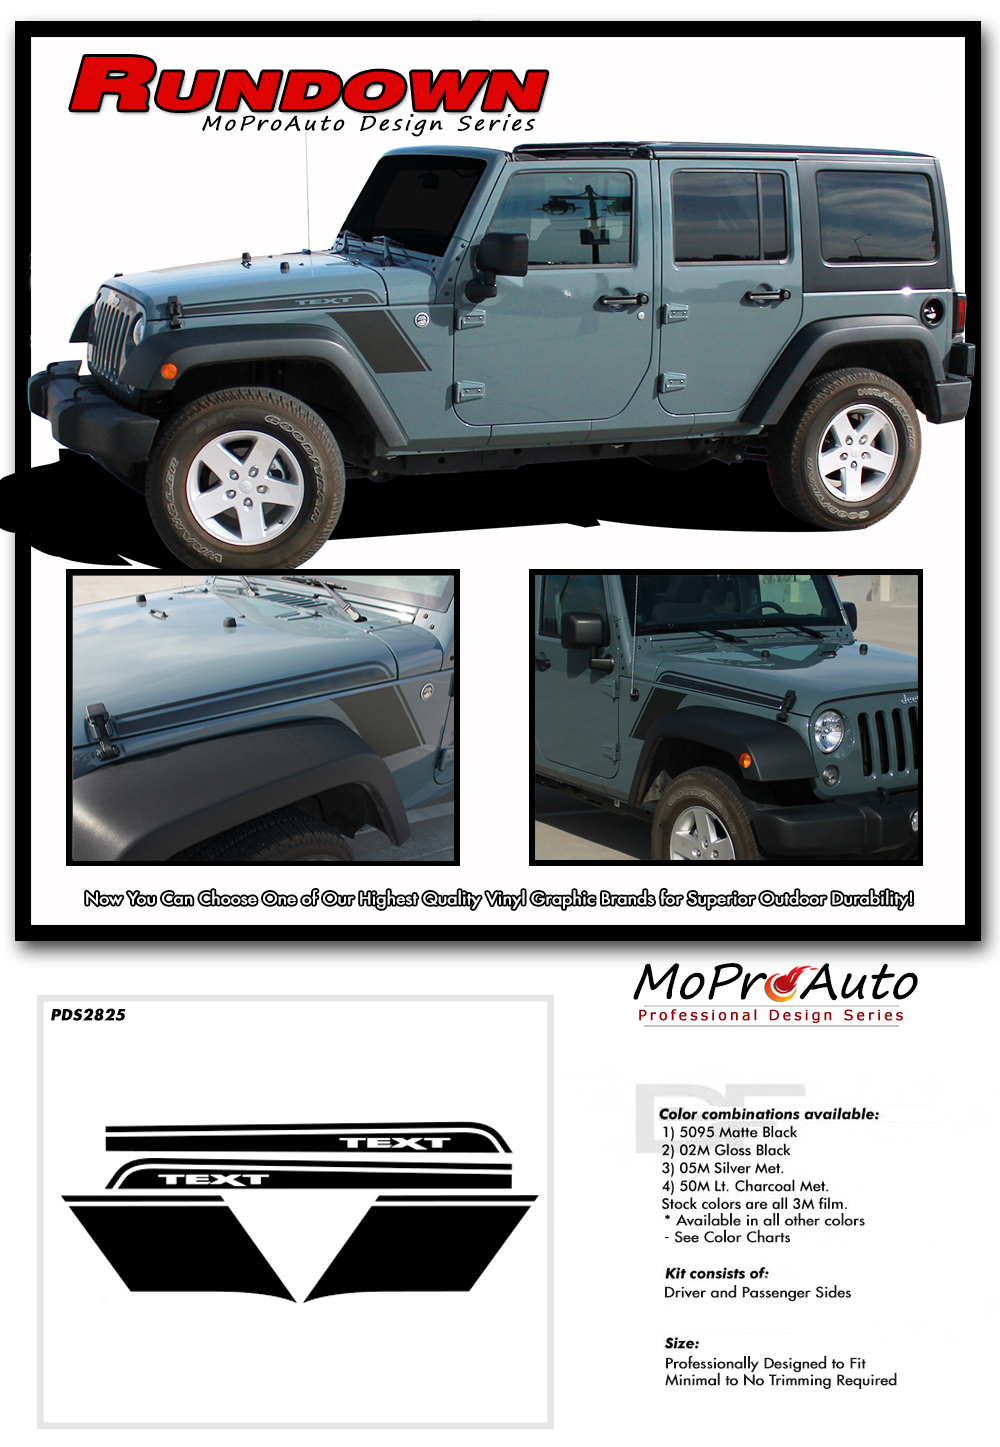 2009-2017 Jeep Wrangler - MoProAuto Pro Design Series Vinyl Graphics, Stripes and Decals Kit